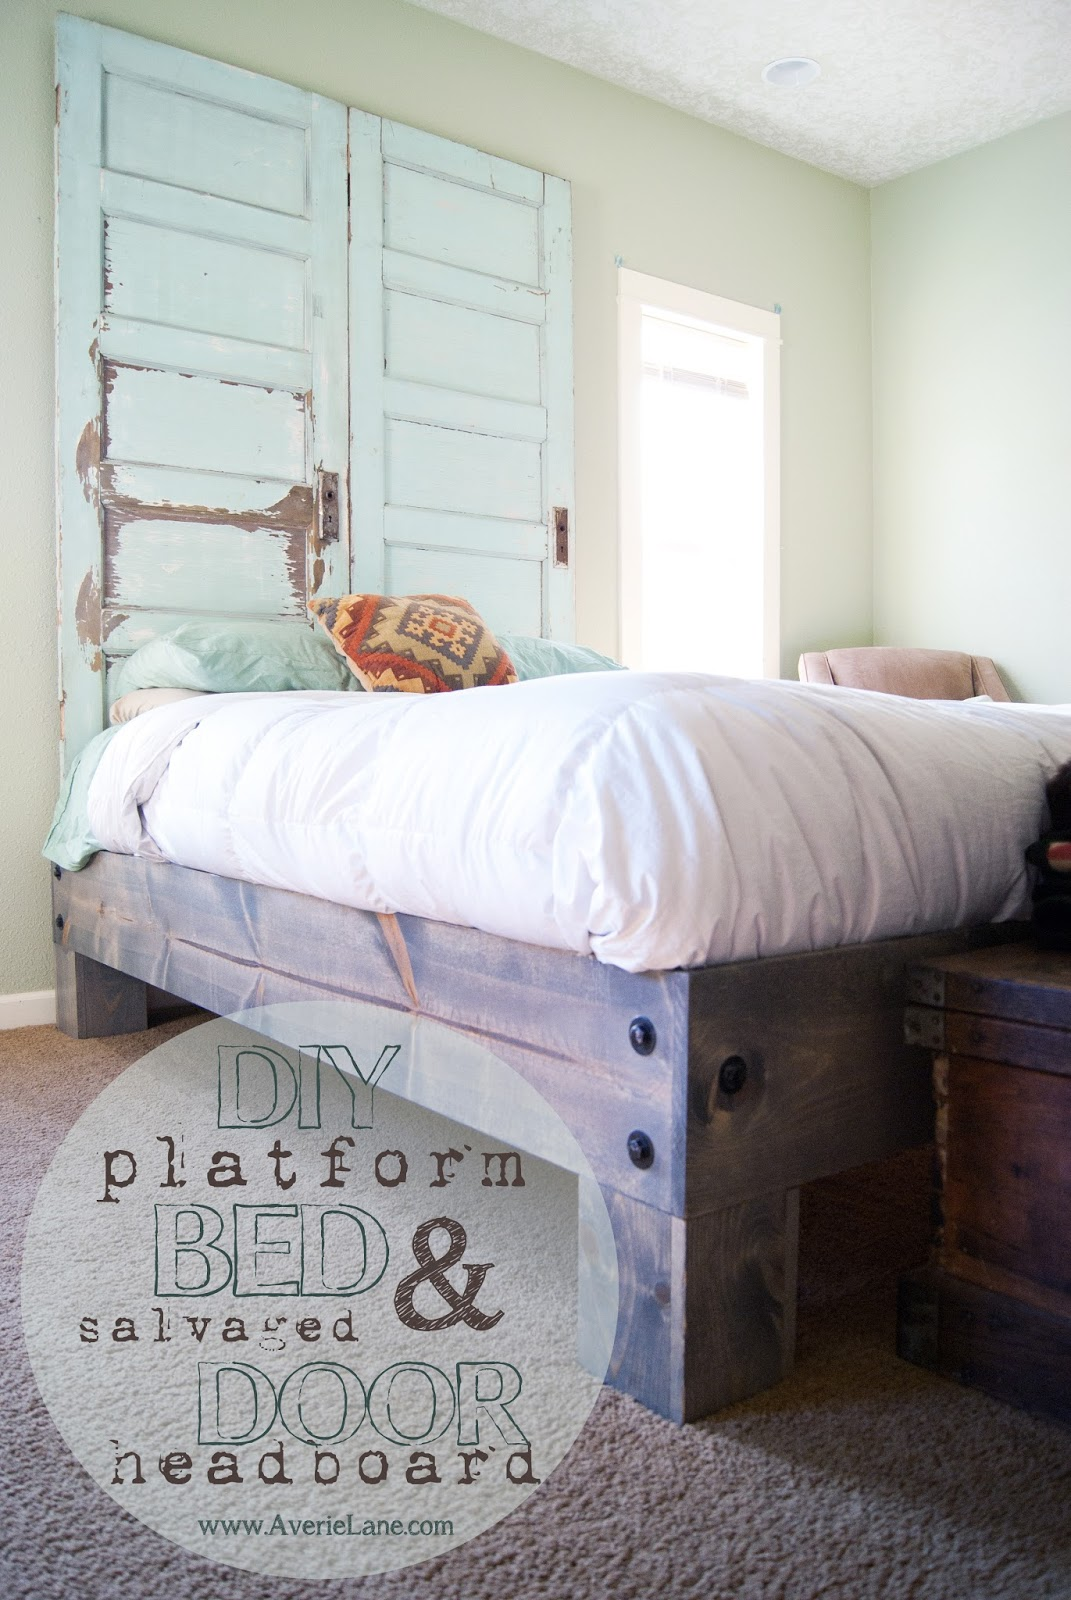 platform bed and old door headboard - DIY Platform Bed & Salvaged Door Headboard {part One} Averie